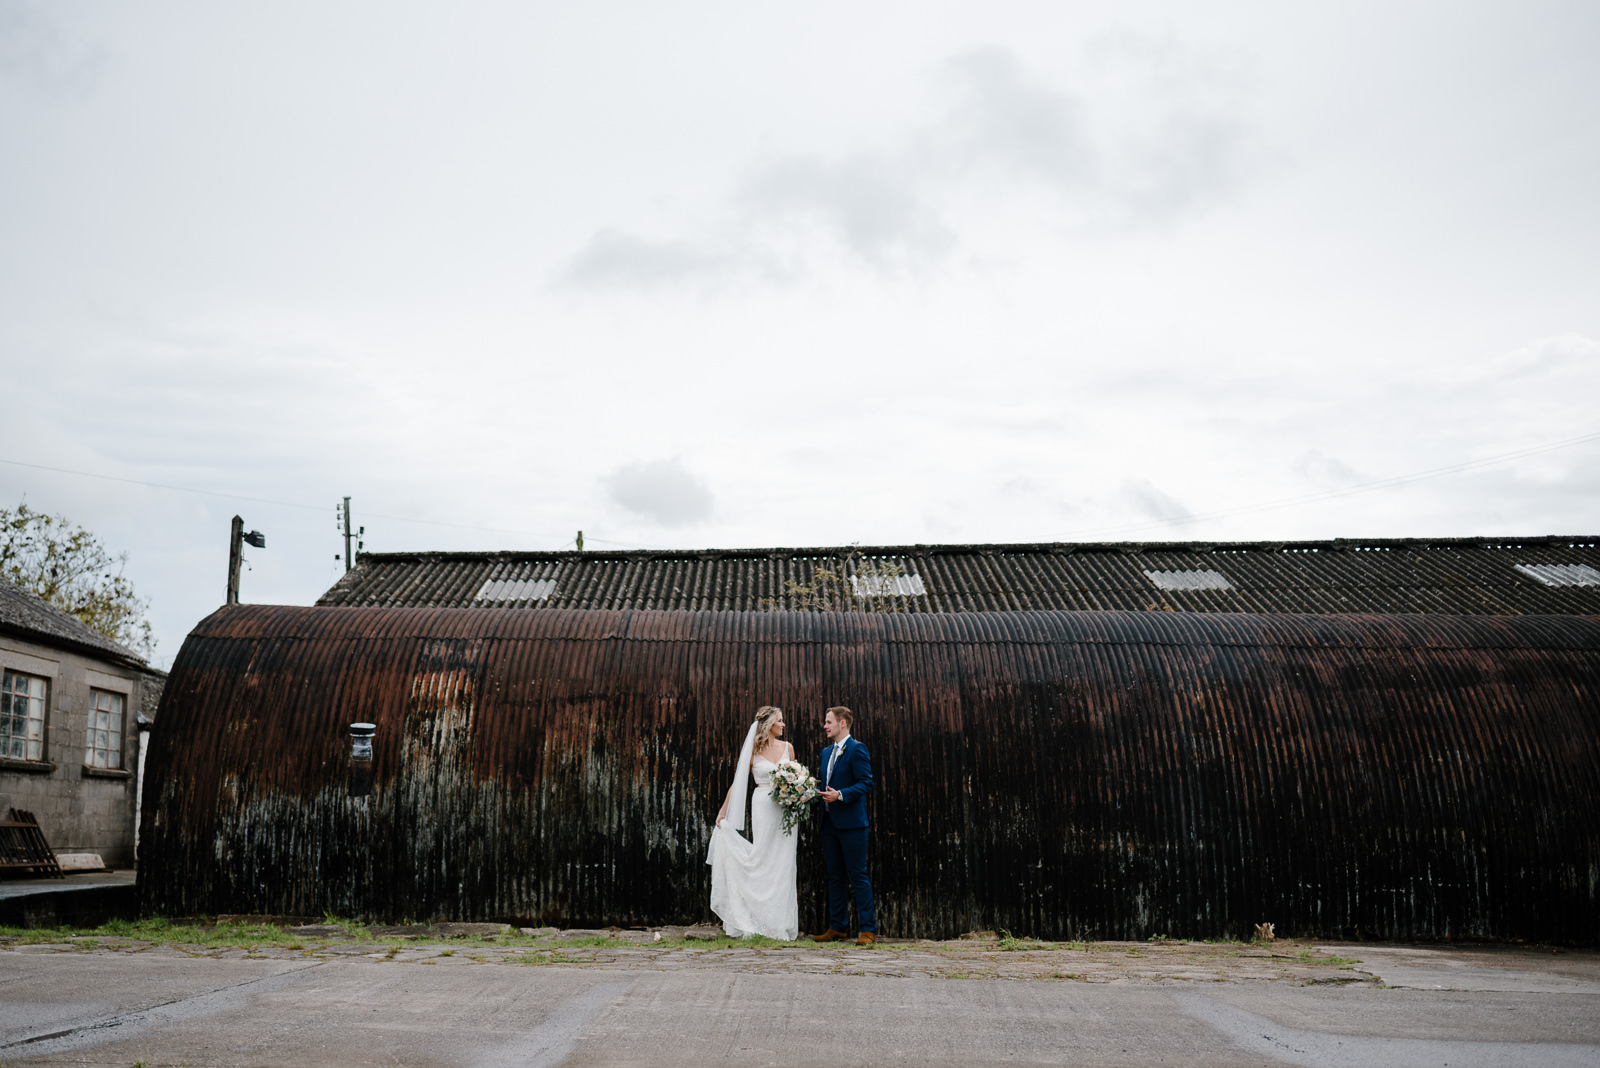 modern bride and groom portraits in industrial setting